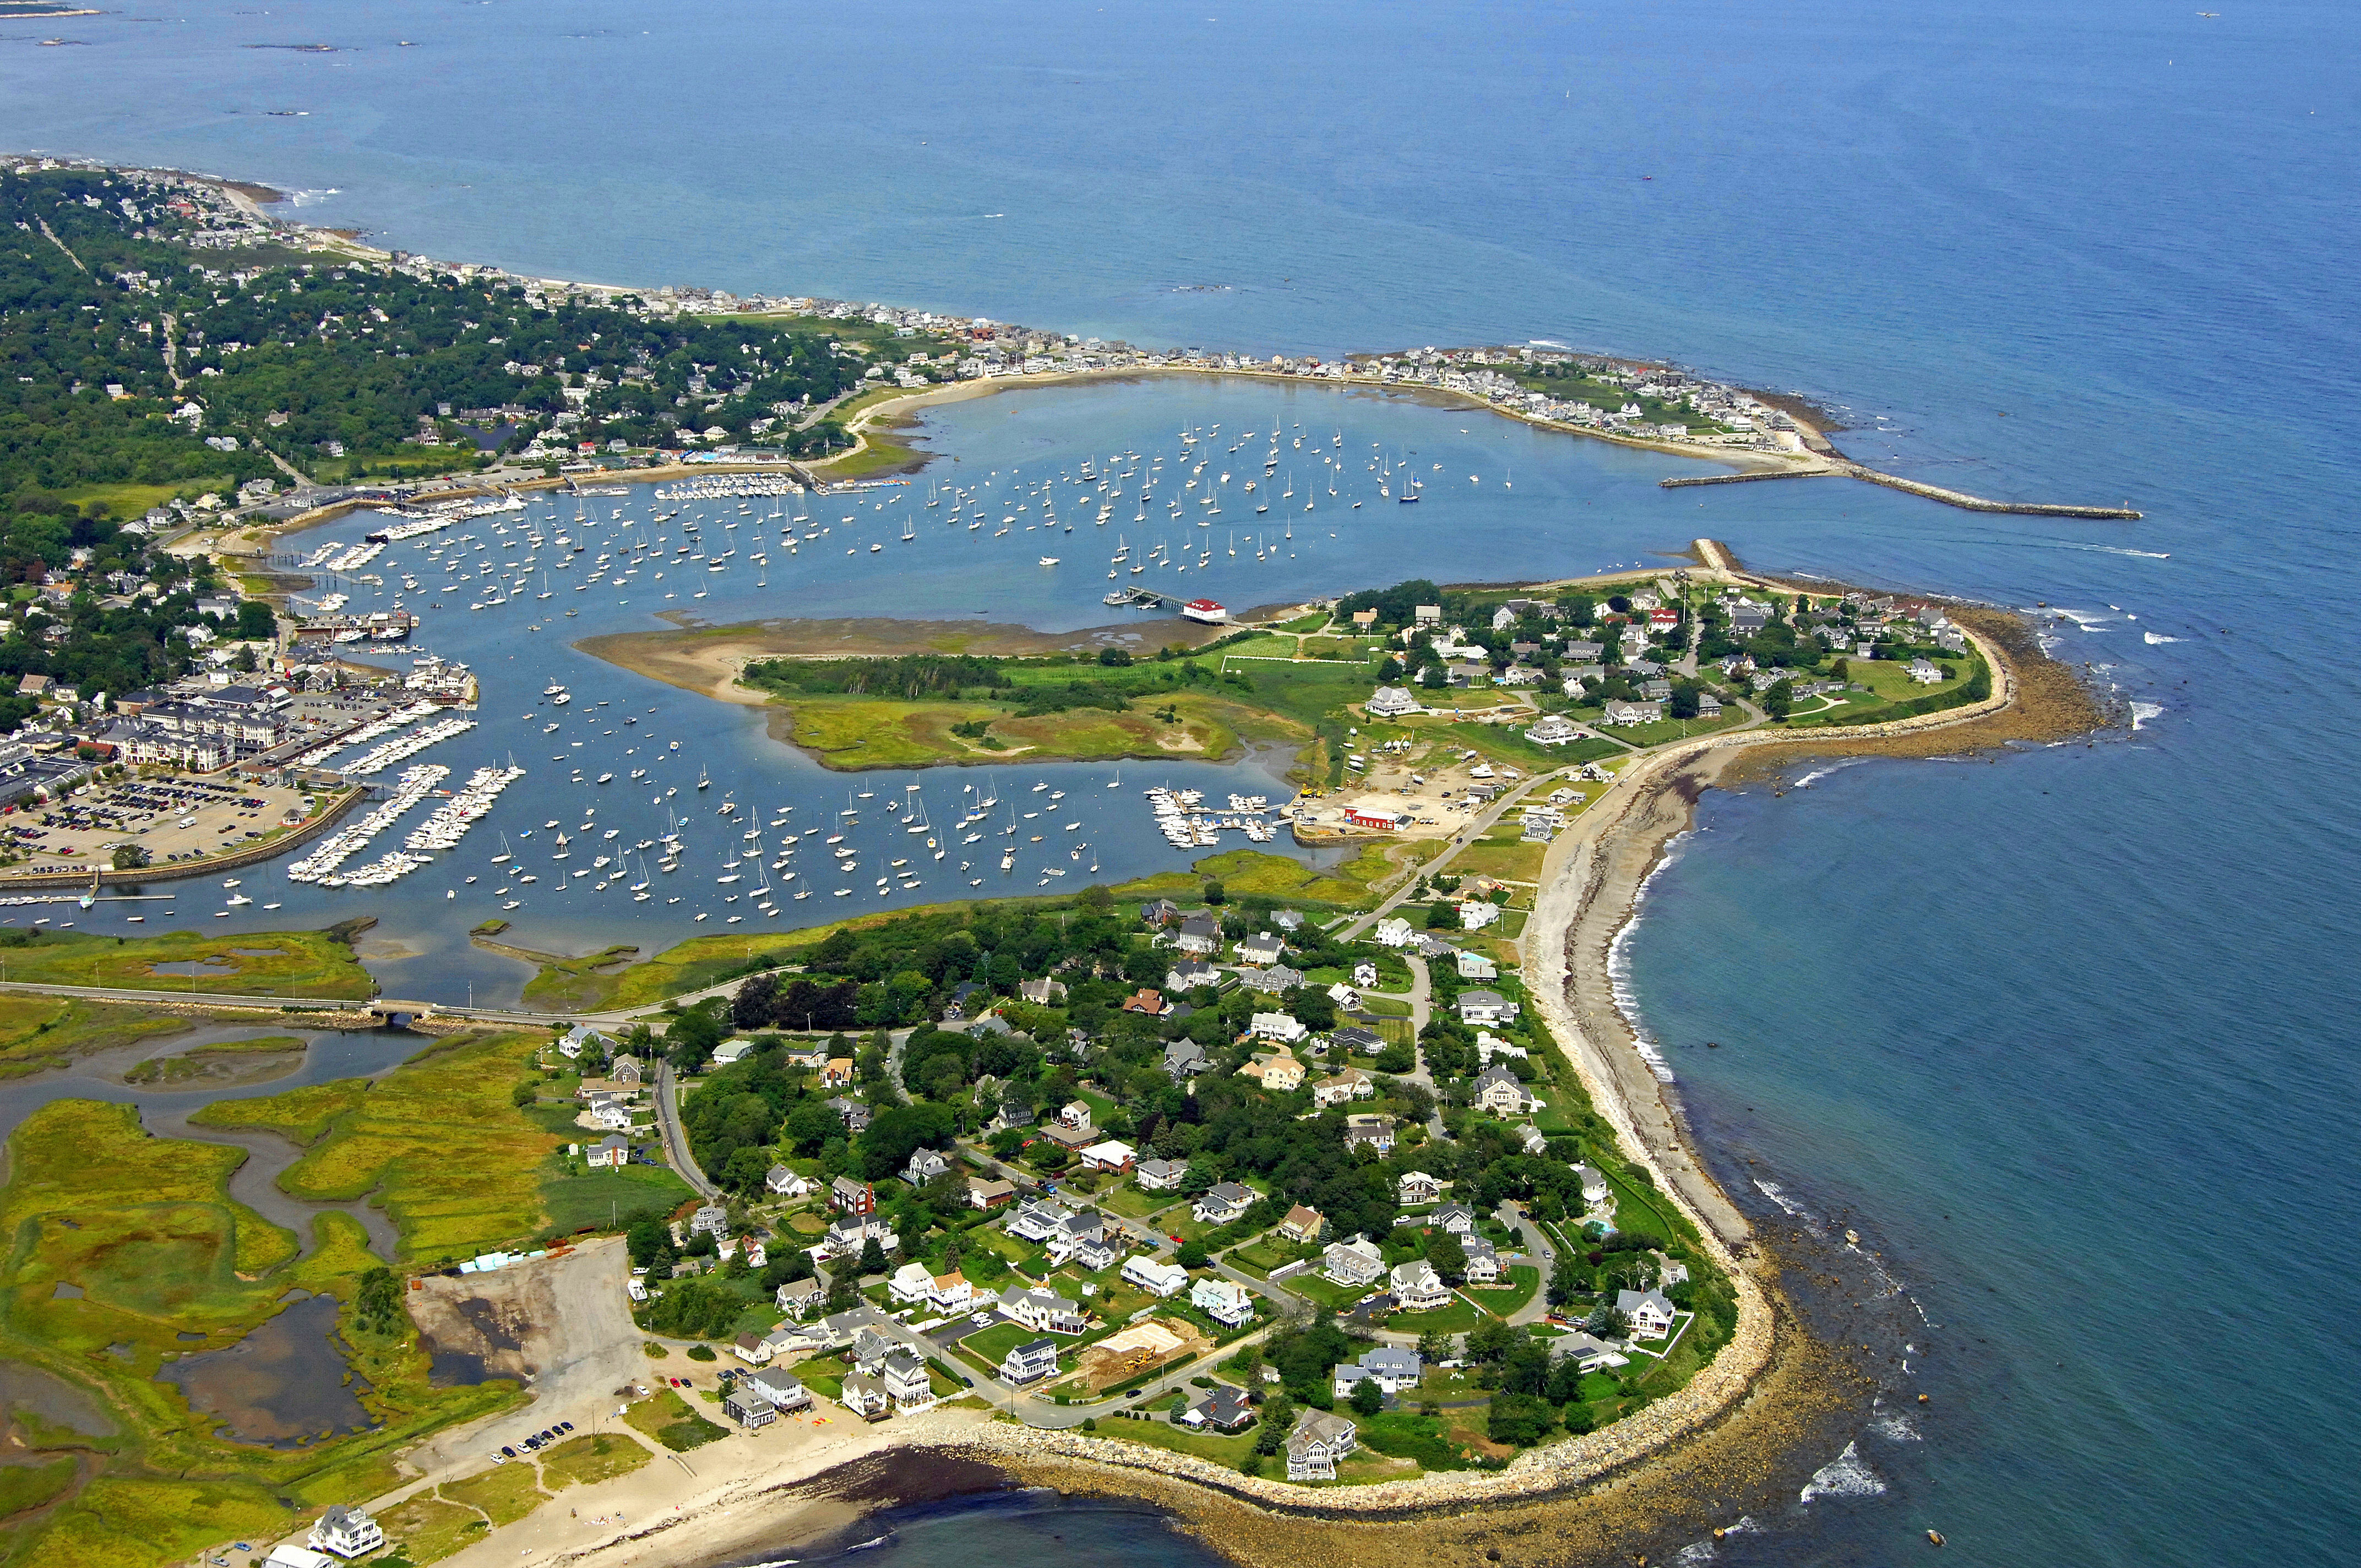 Scituate harbor in scituate ma united states harbor reviews scituate harbor scituate harbor scituate harbor scituate harbor nvjuhfo Gallery